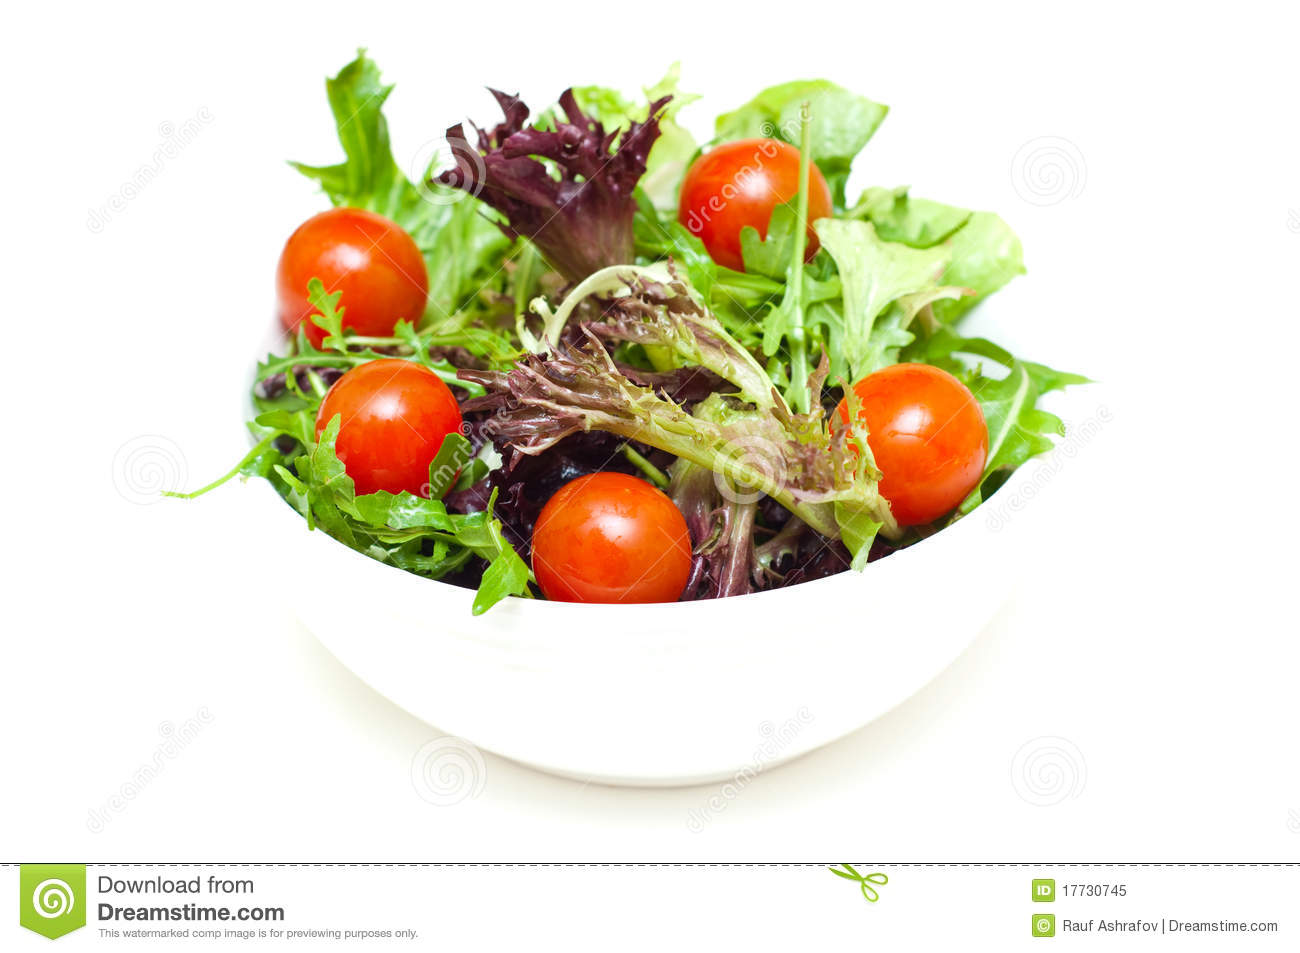 Salad In A Bowl On White Royalty Free Stock Photo - Image: 17730745